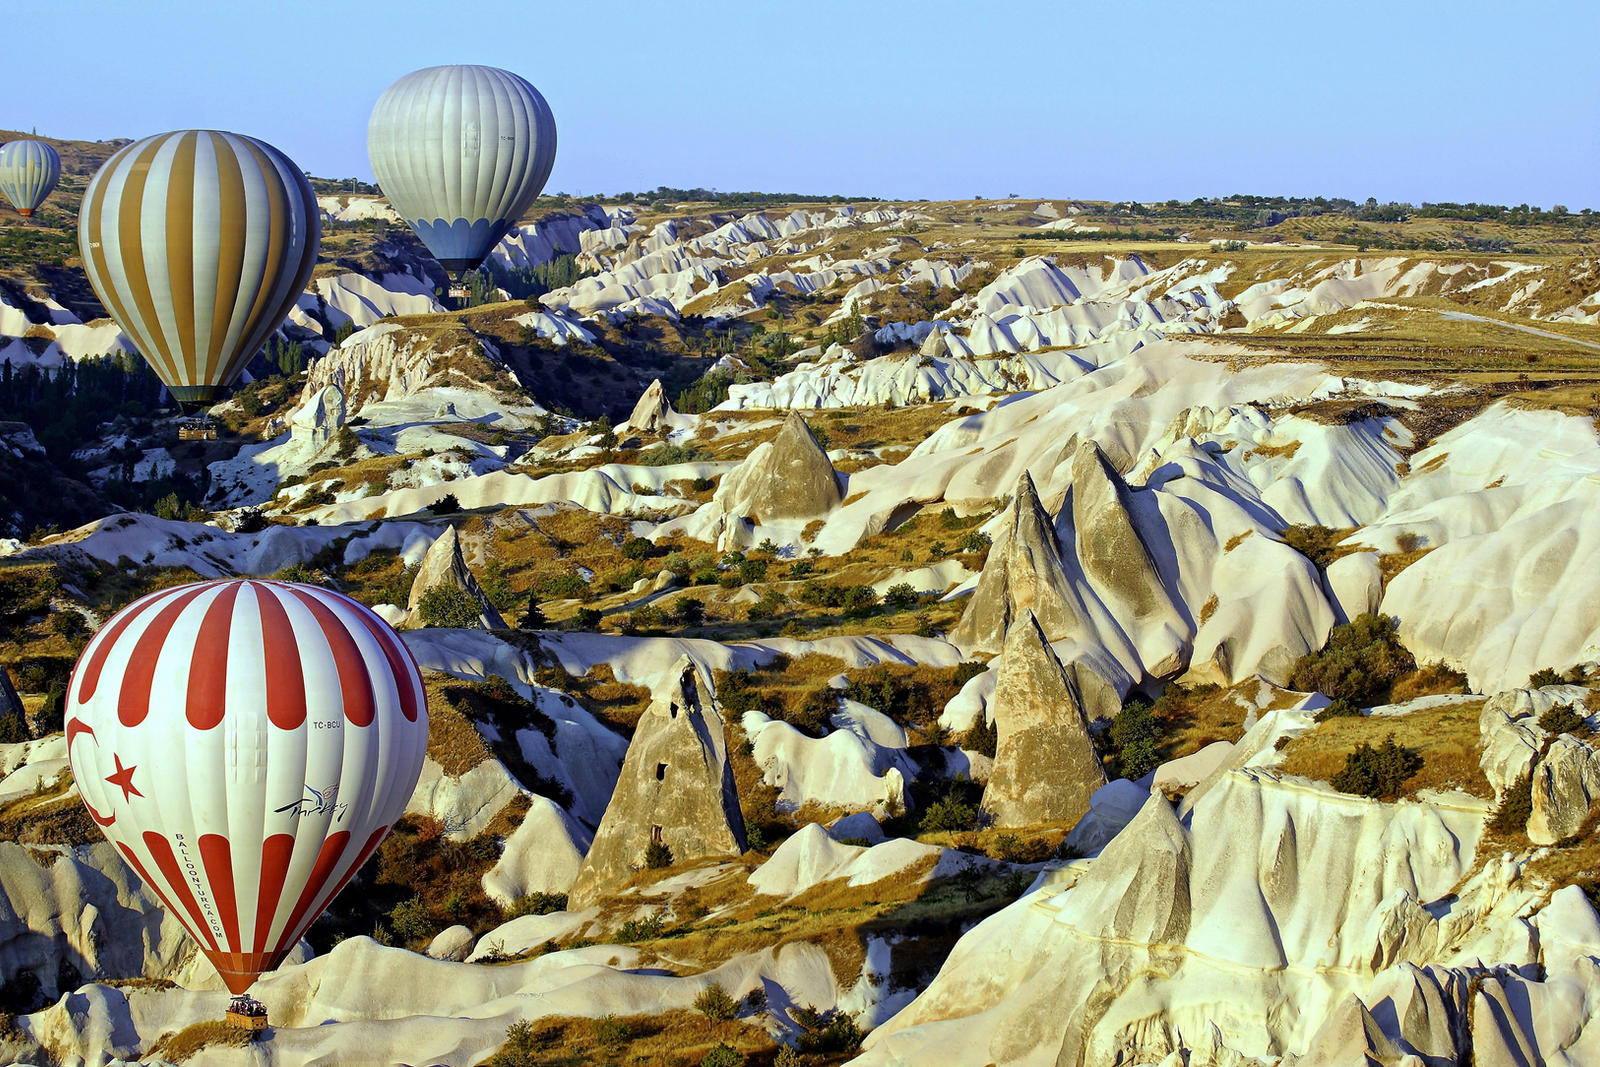 Balloons over Cappadocia 10 by CitizenFresh